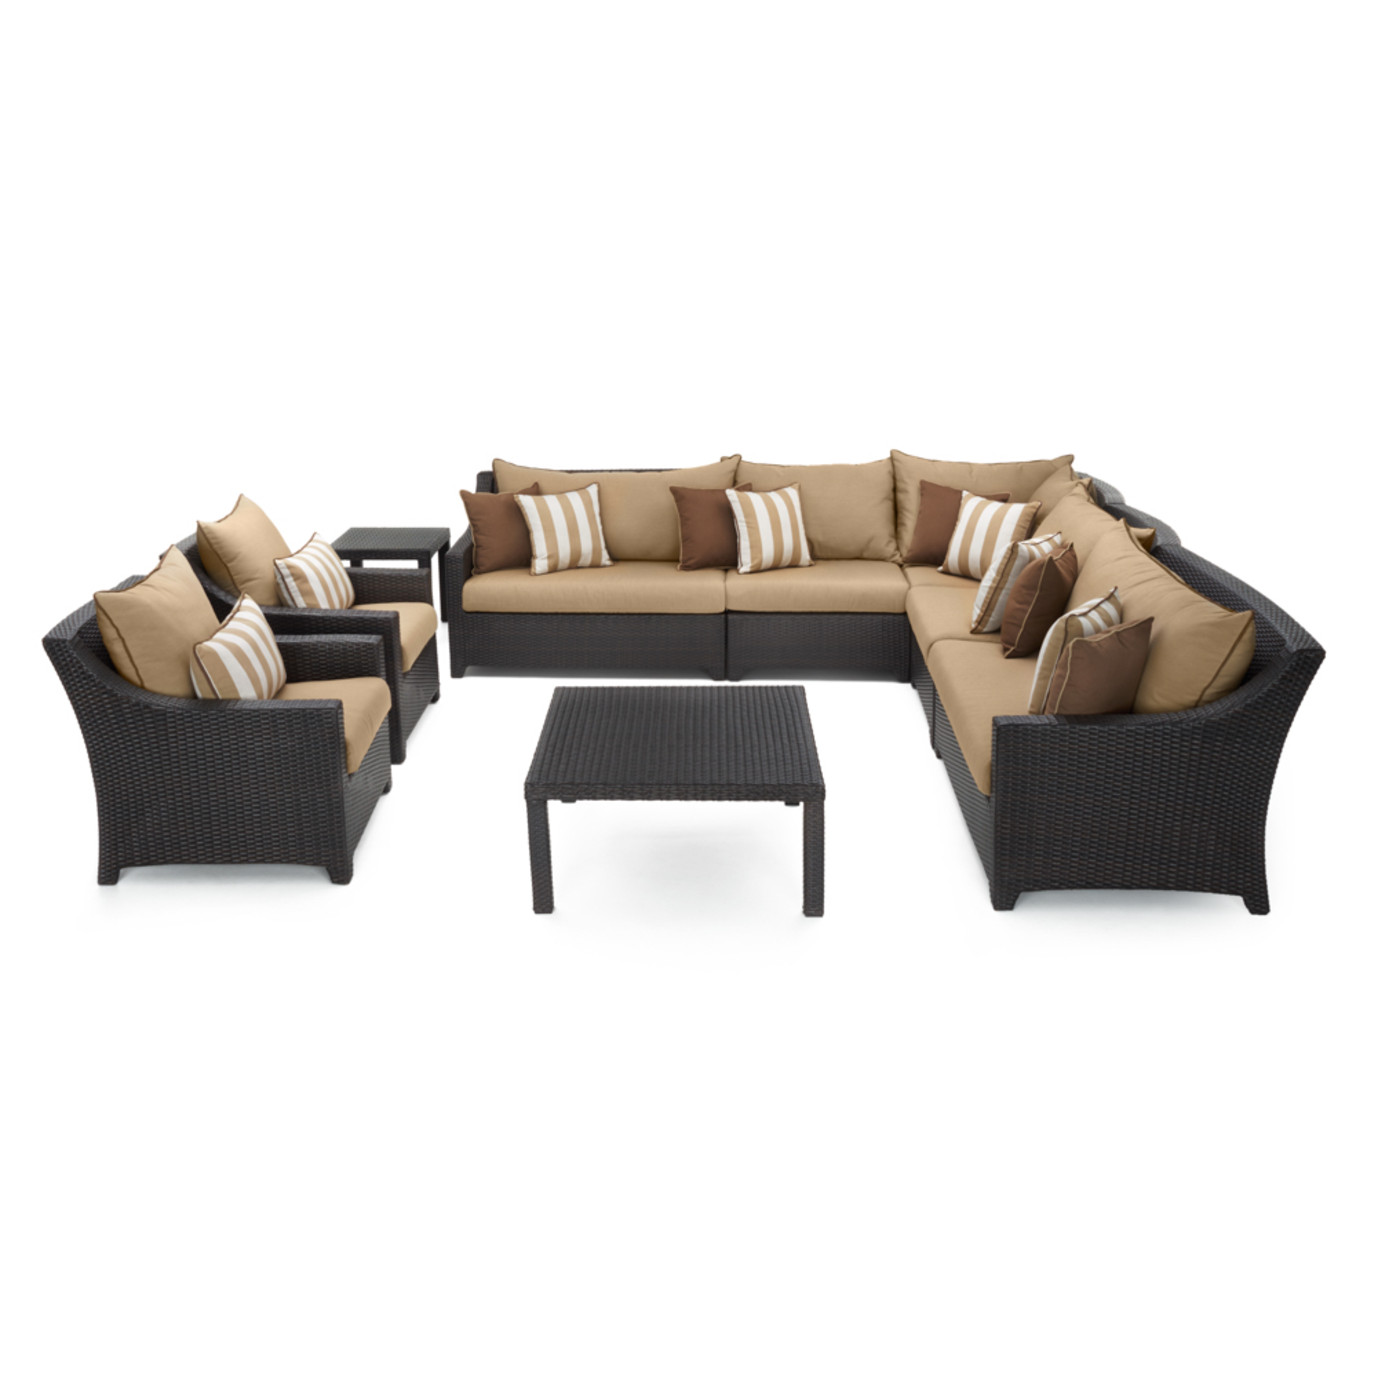 Deco™ 9pc Sectional and Club Set - Maxim Beige